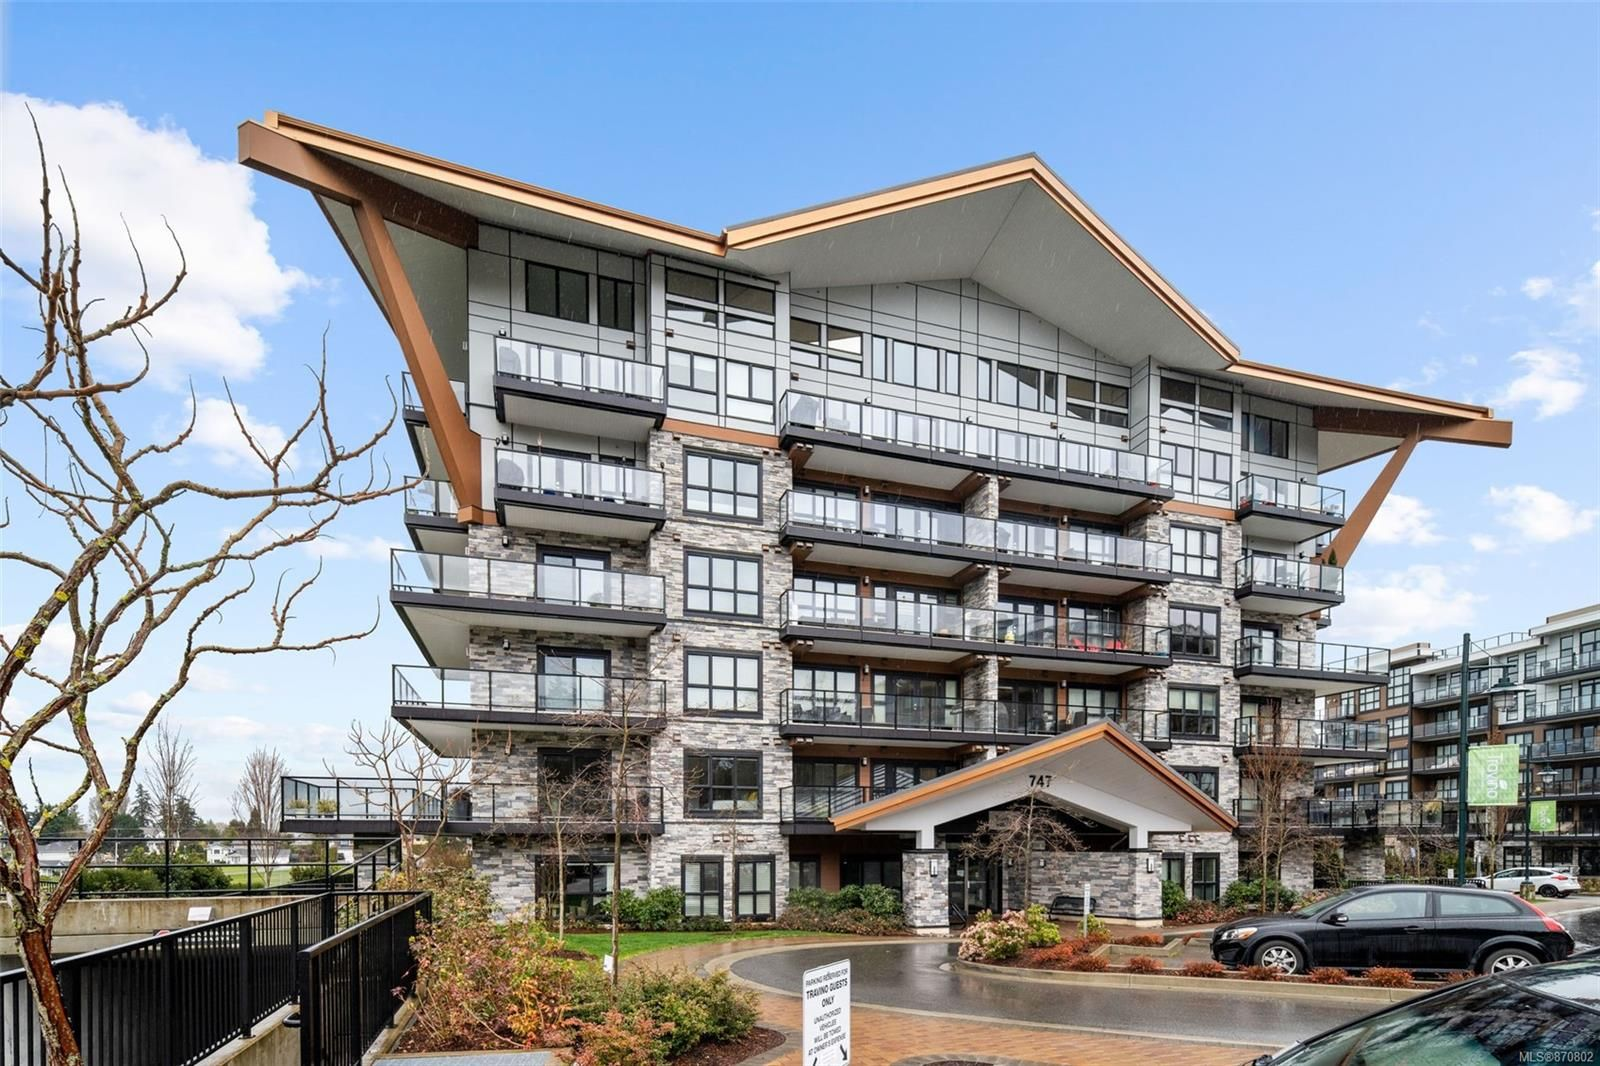 Main Photo: 410 747 Travino Lane in : SW Royal Oak Condo for sale (Saanich West)  : MLS®# 870802